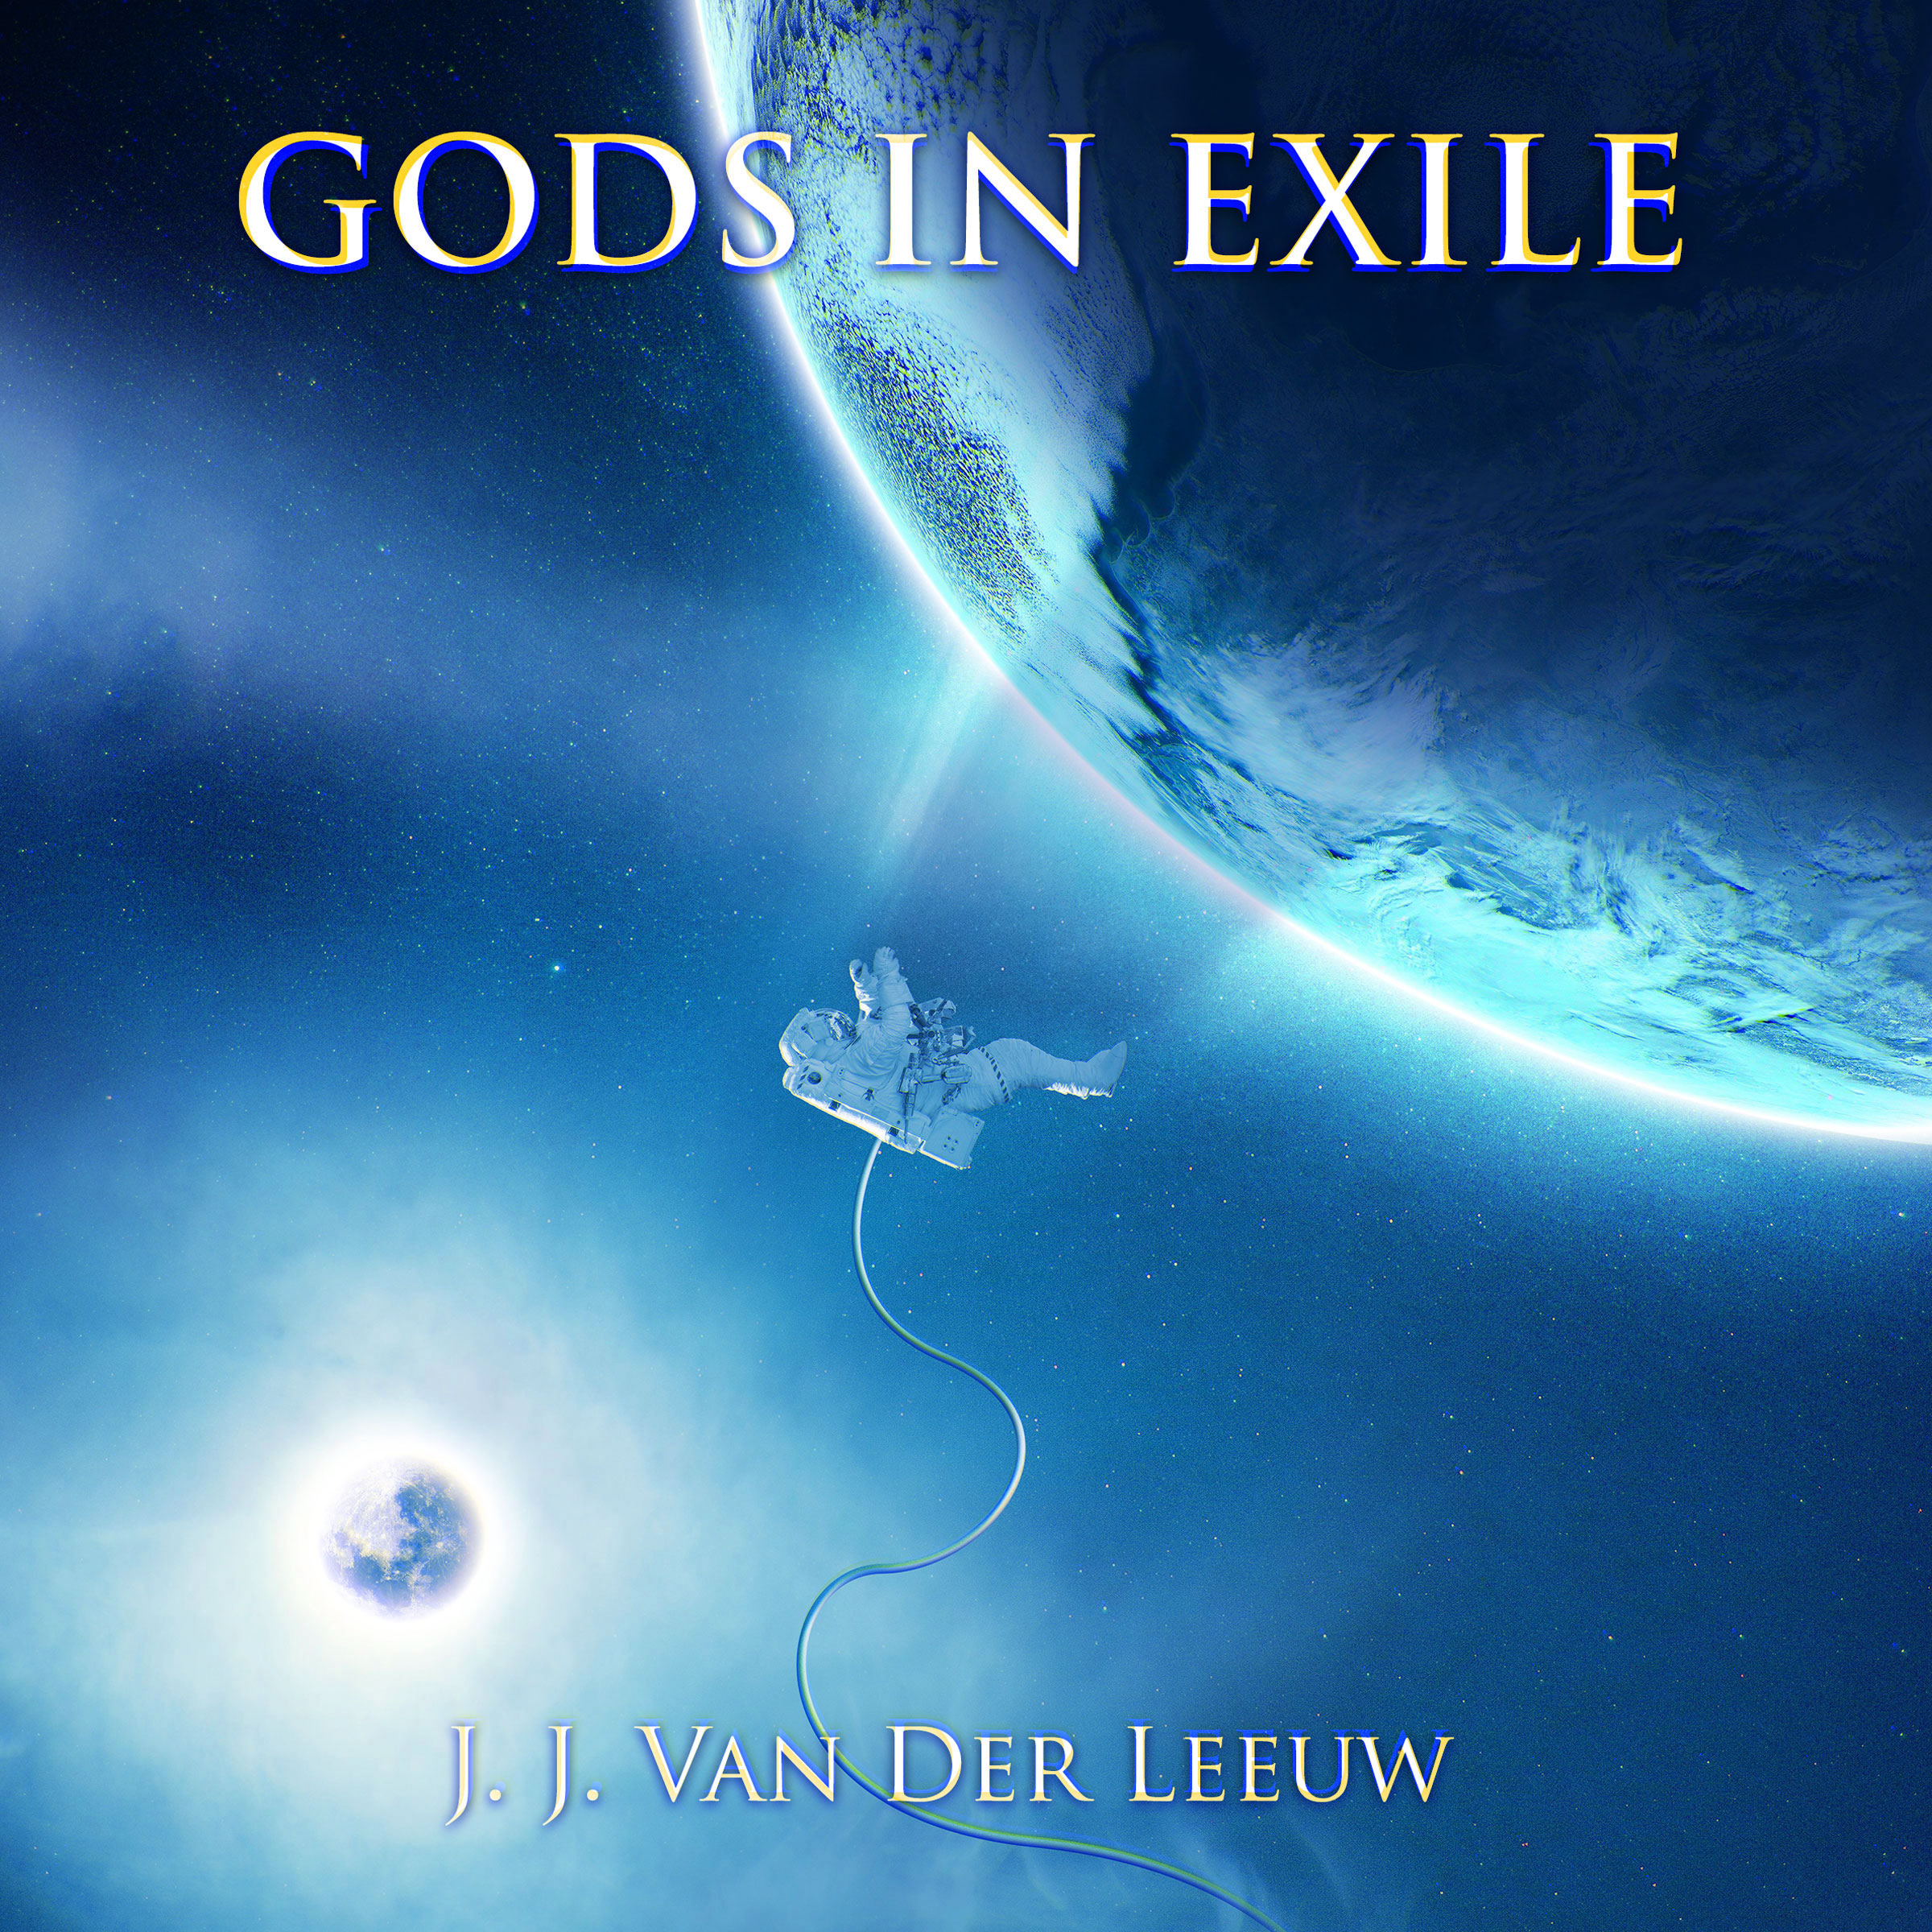 Gods_in_exile_cover.jpg